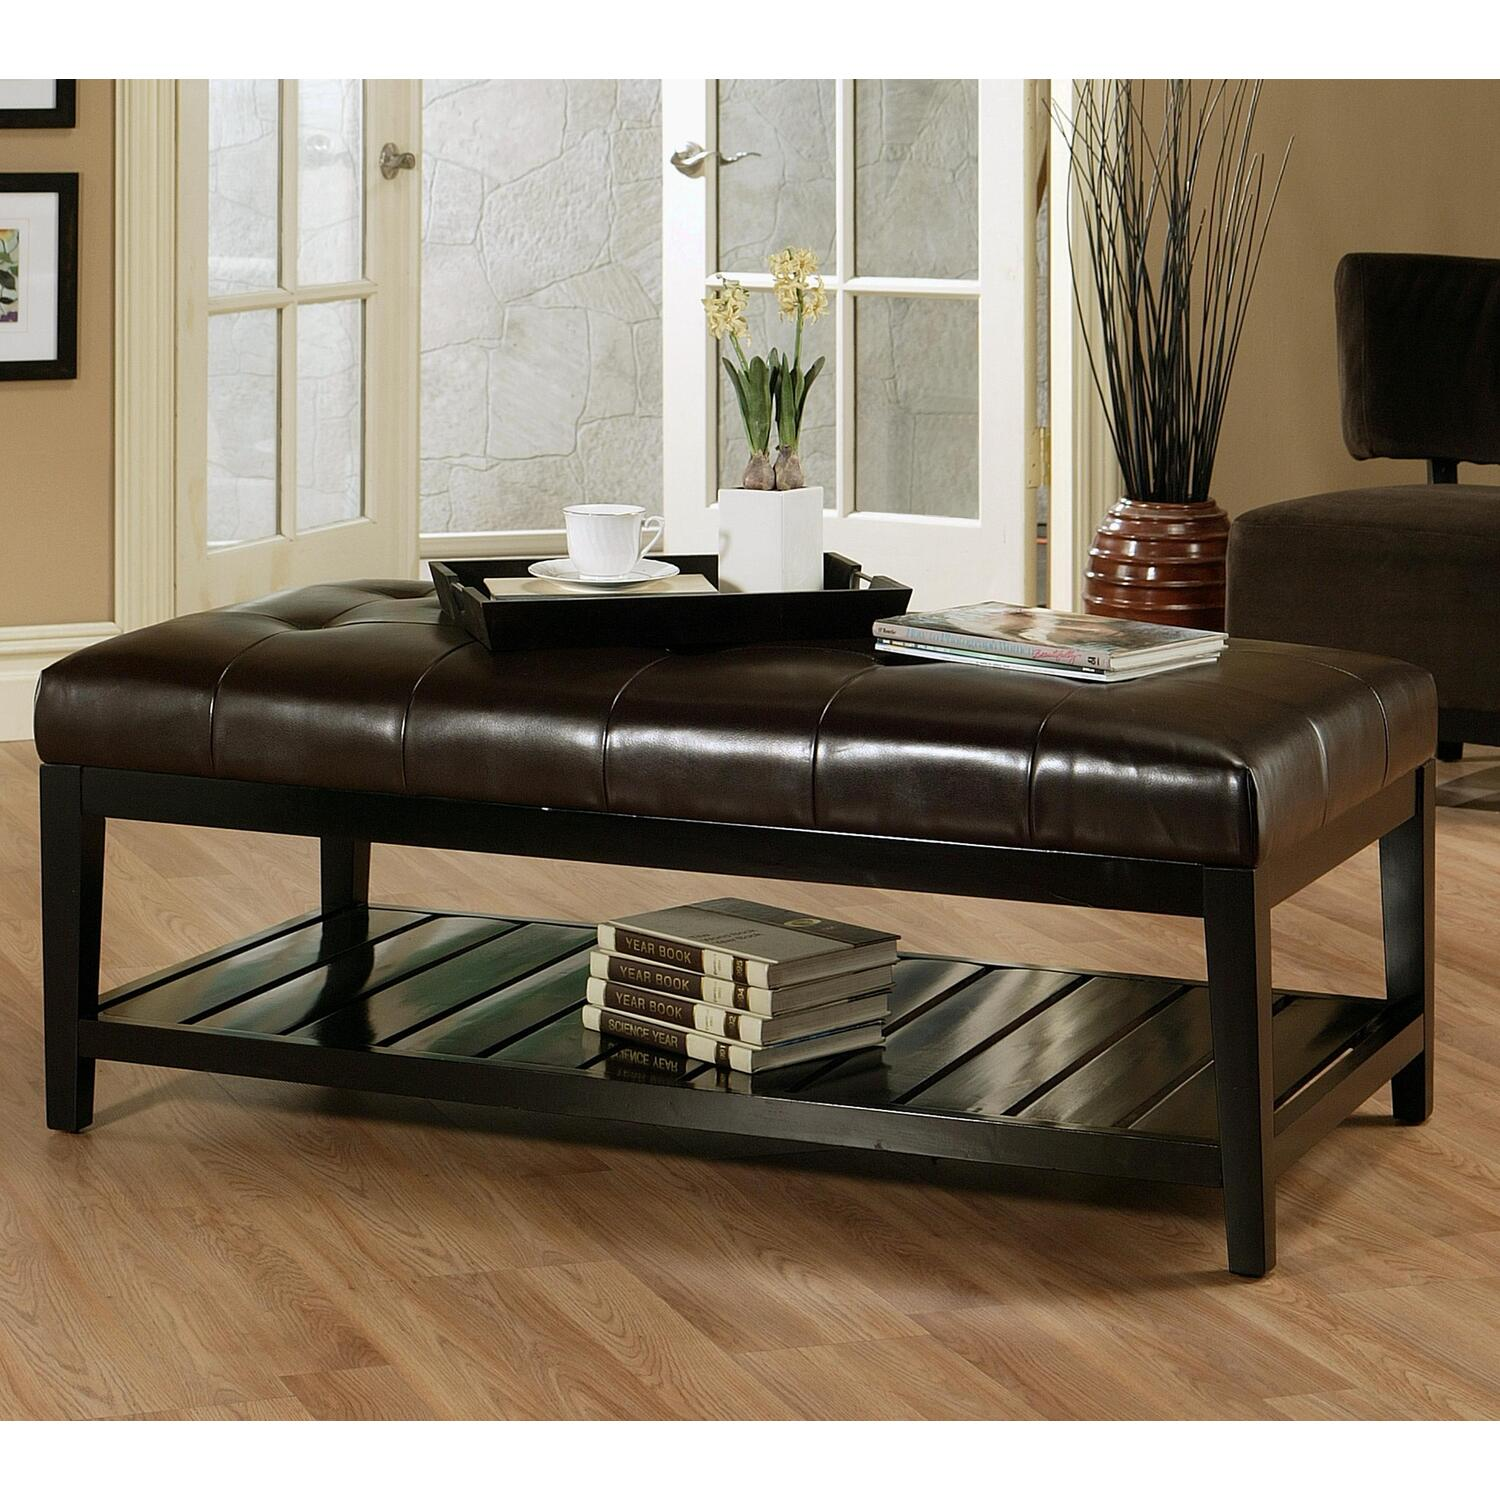 Abbyson living bicast tufted leather coffee table ottoman by oj commerce abbl156 Dark brown leather ottoman coffee table